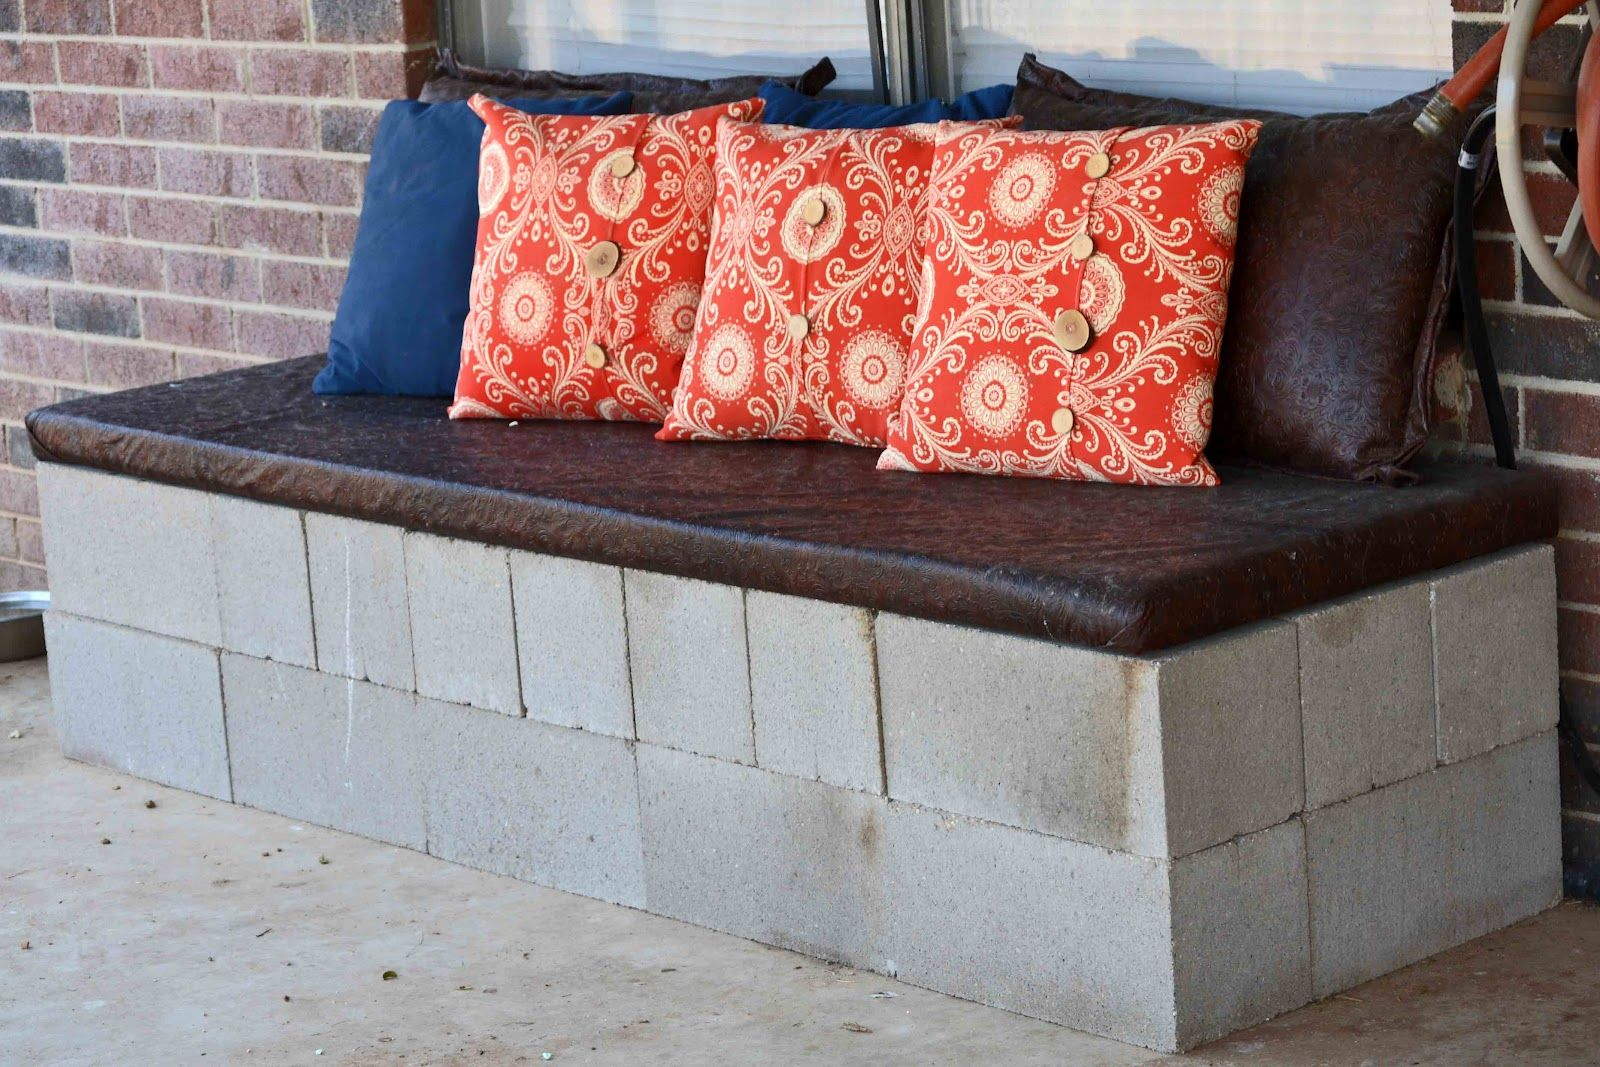 Cinder Block Bench Cinder Block Benches Pinterest Cinder Block Bench Bench And Yards